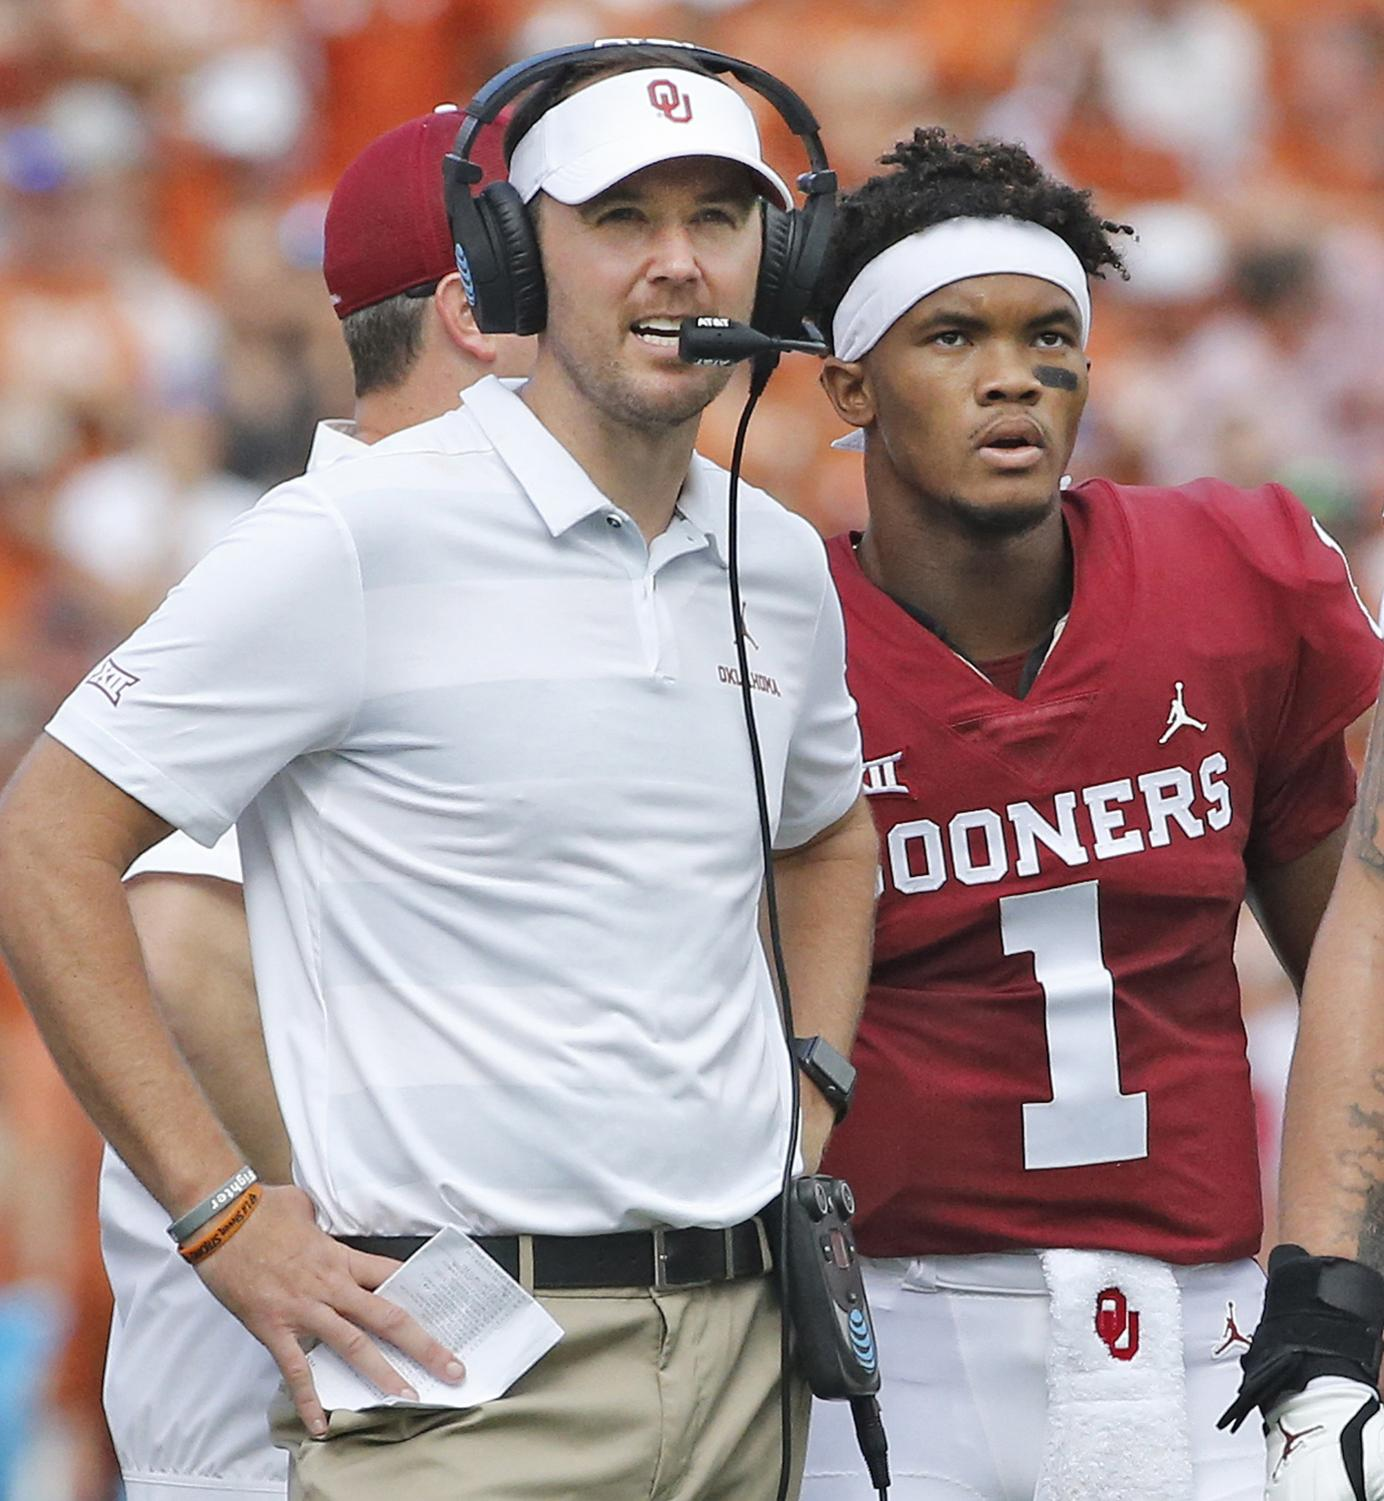 Oklahoma head coach Lincoln Riley and quarterback Kyler Murray (1) confer during a game against Texas.